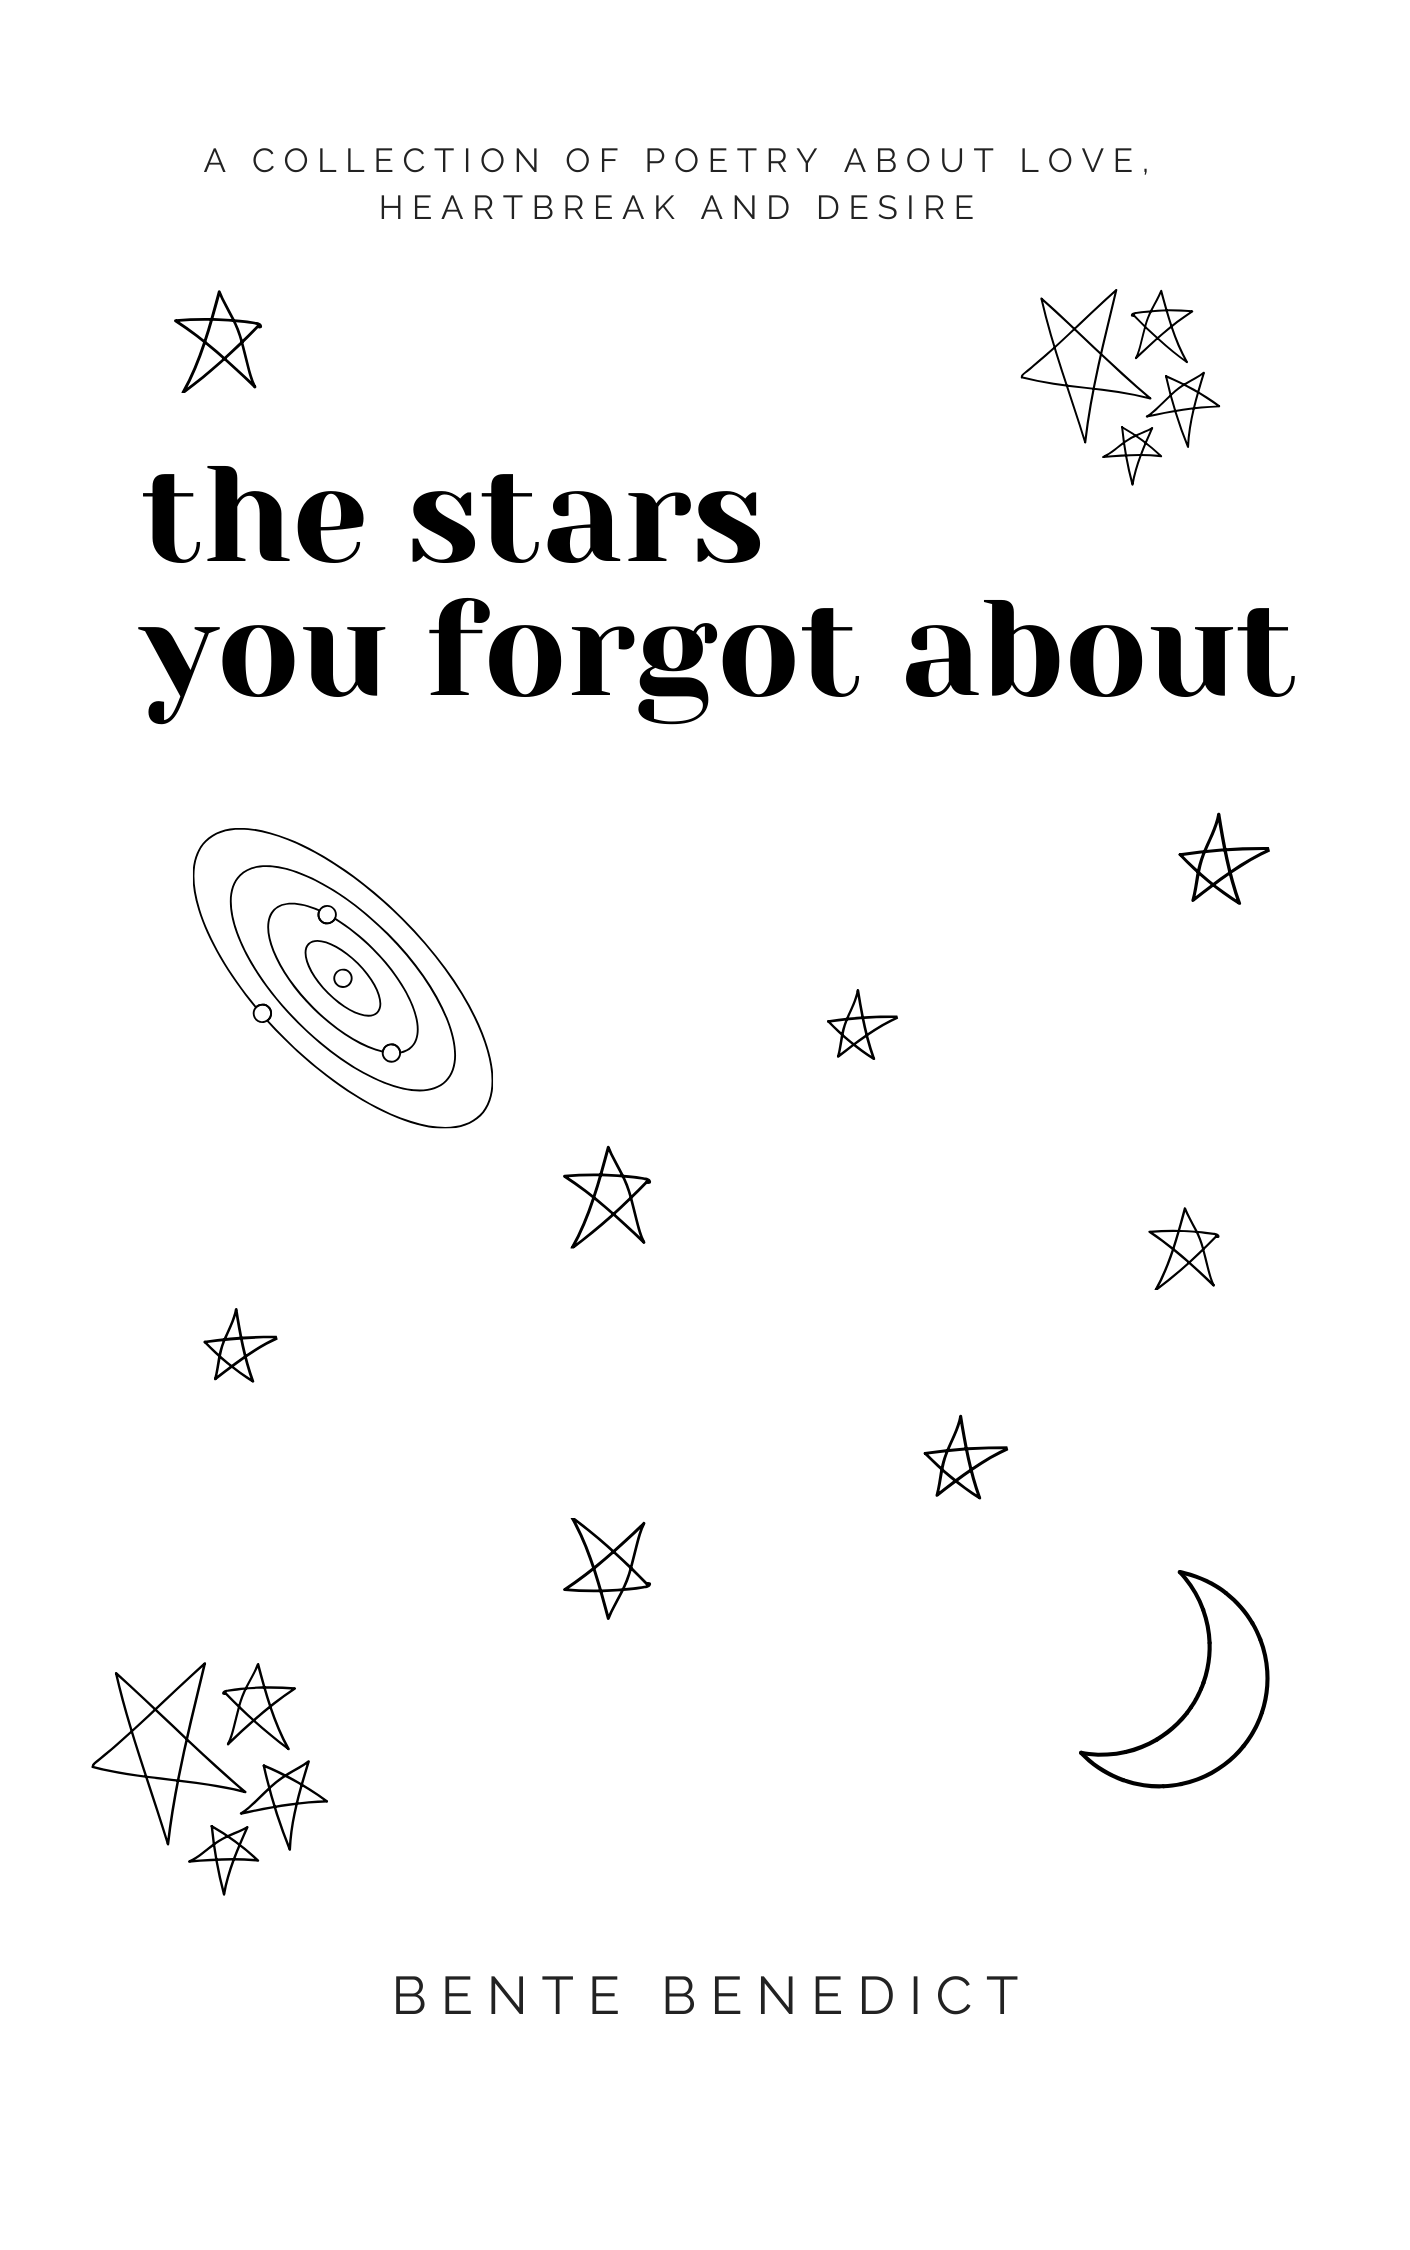 the stars you forgot about: a collection of poetry about love, heartbreak and desire